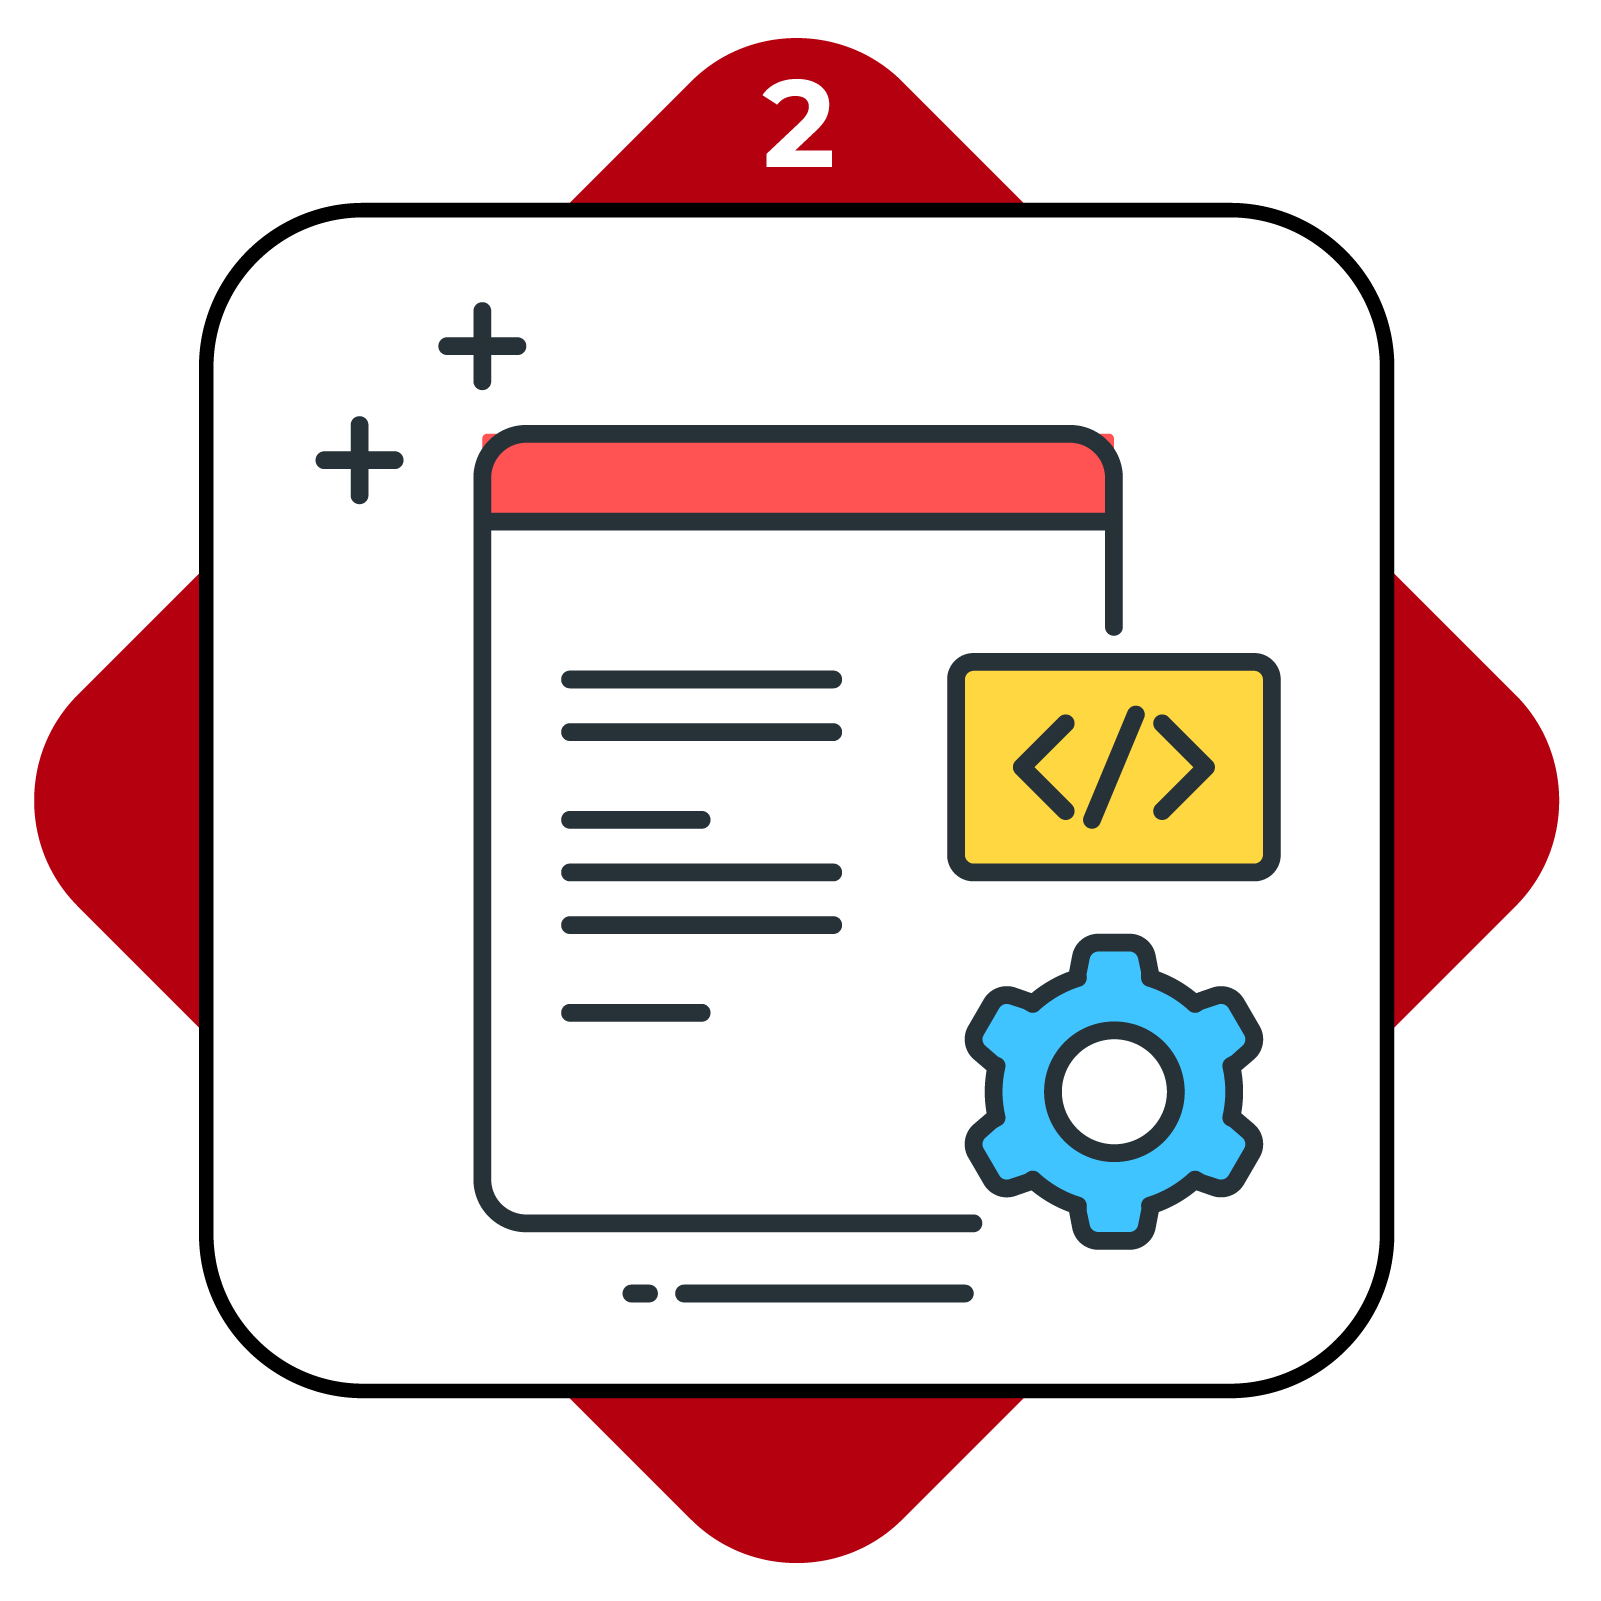 Higher Ed Promo Terms #2 showing software license